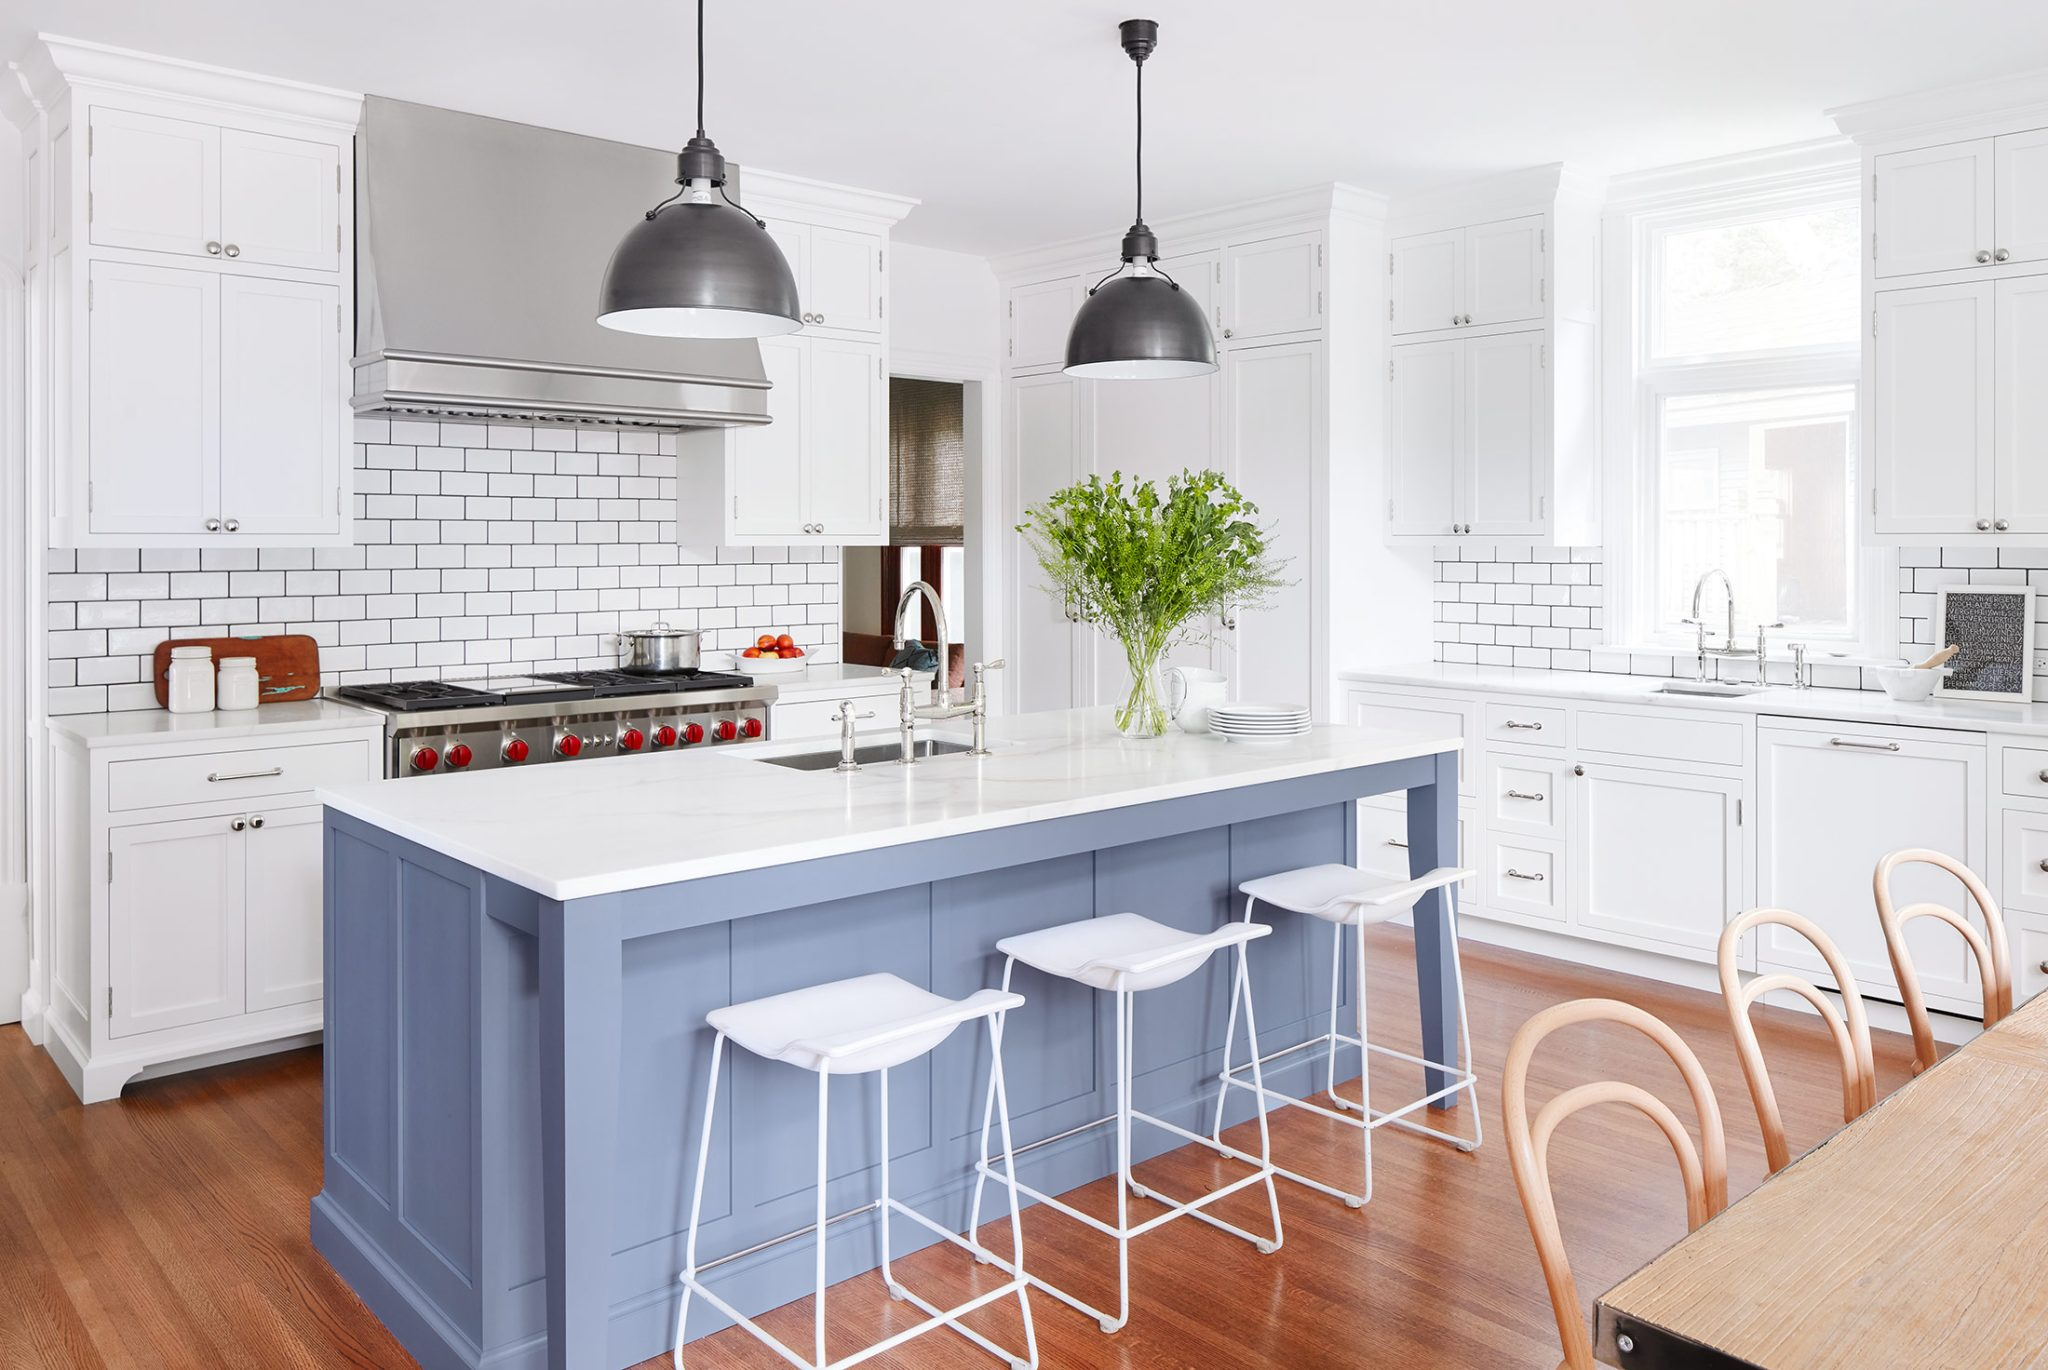 White kitchen with blue island by 2to5 Design